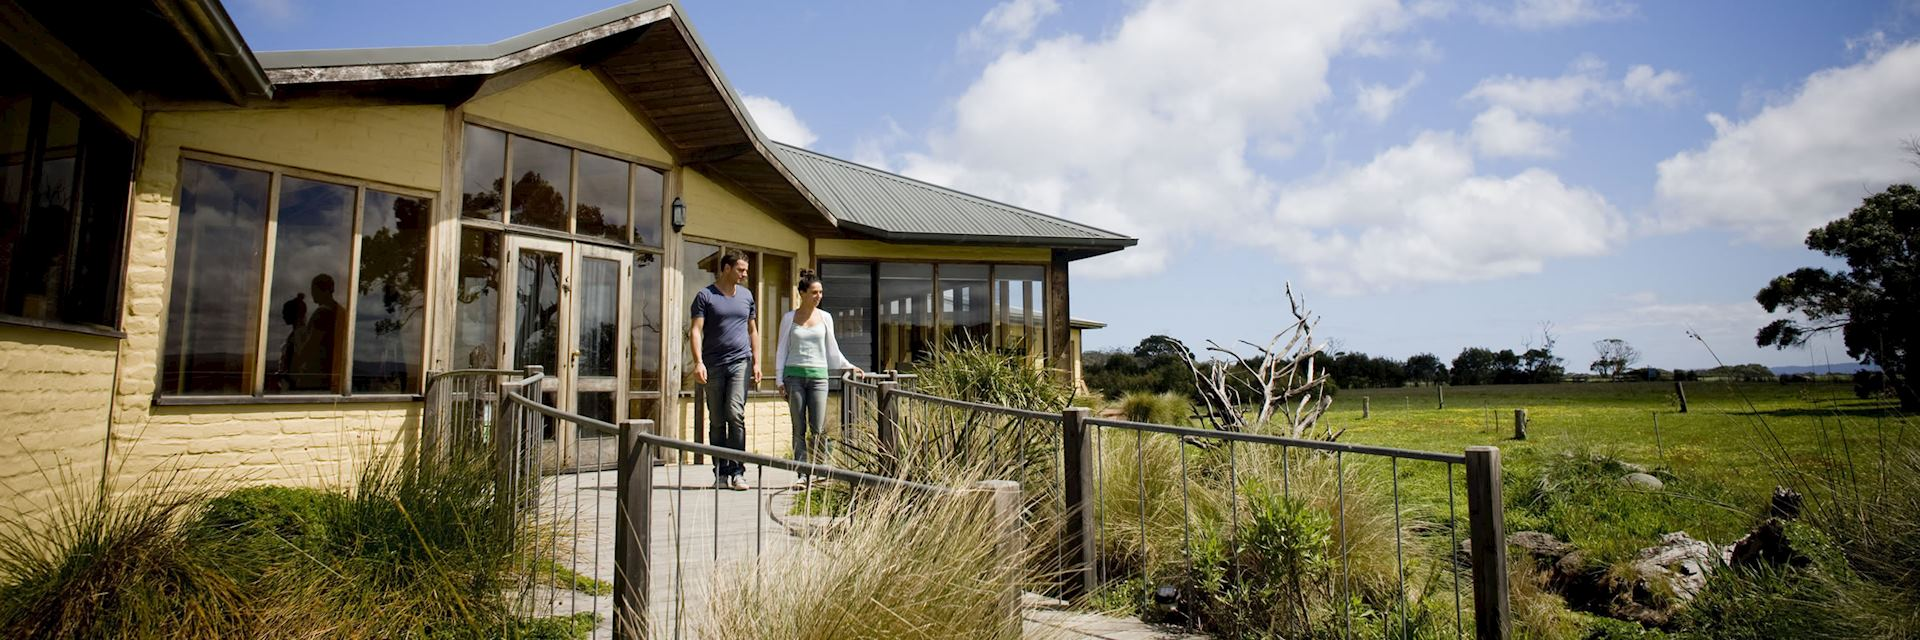 Great Ocean Ecolodge © Mark Chew